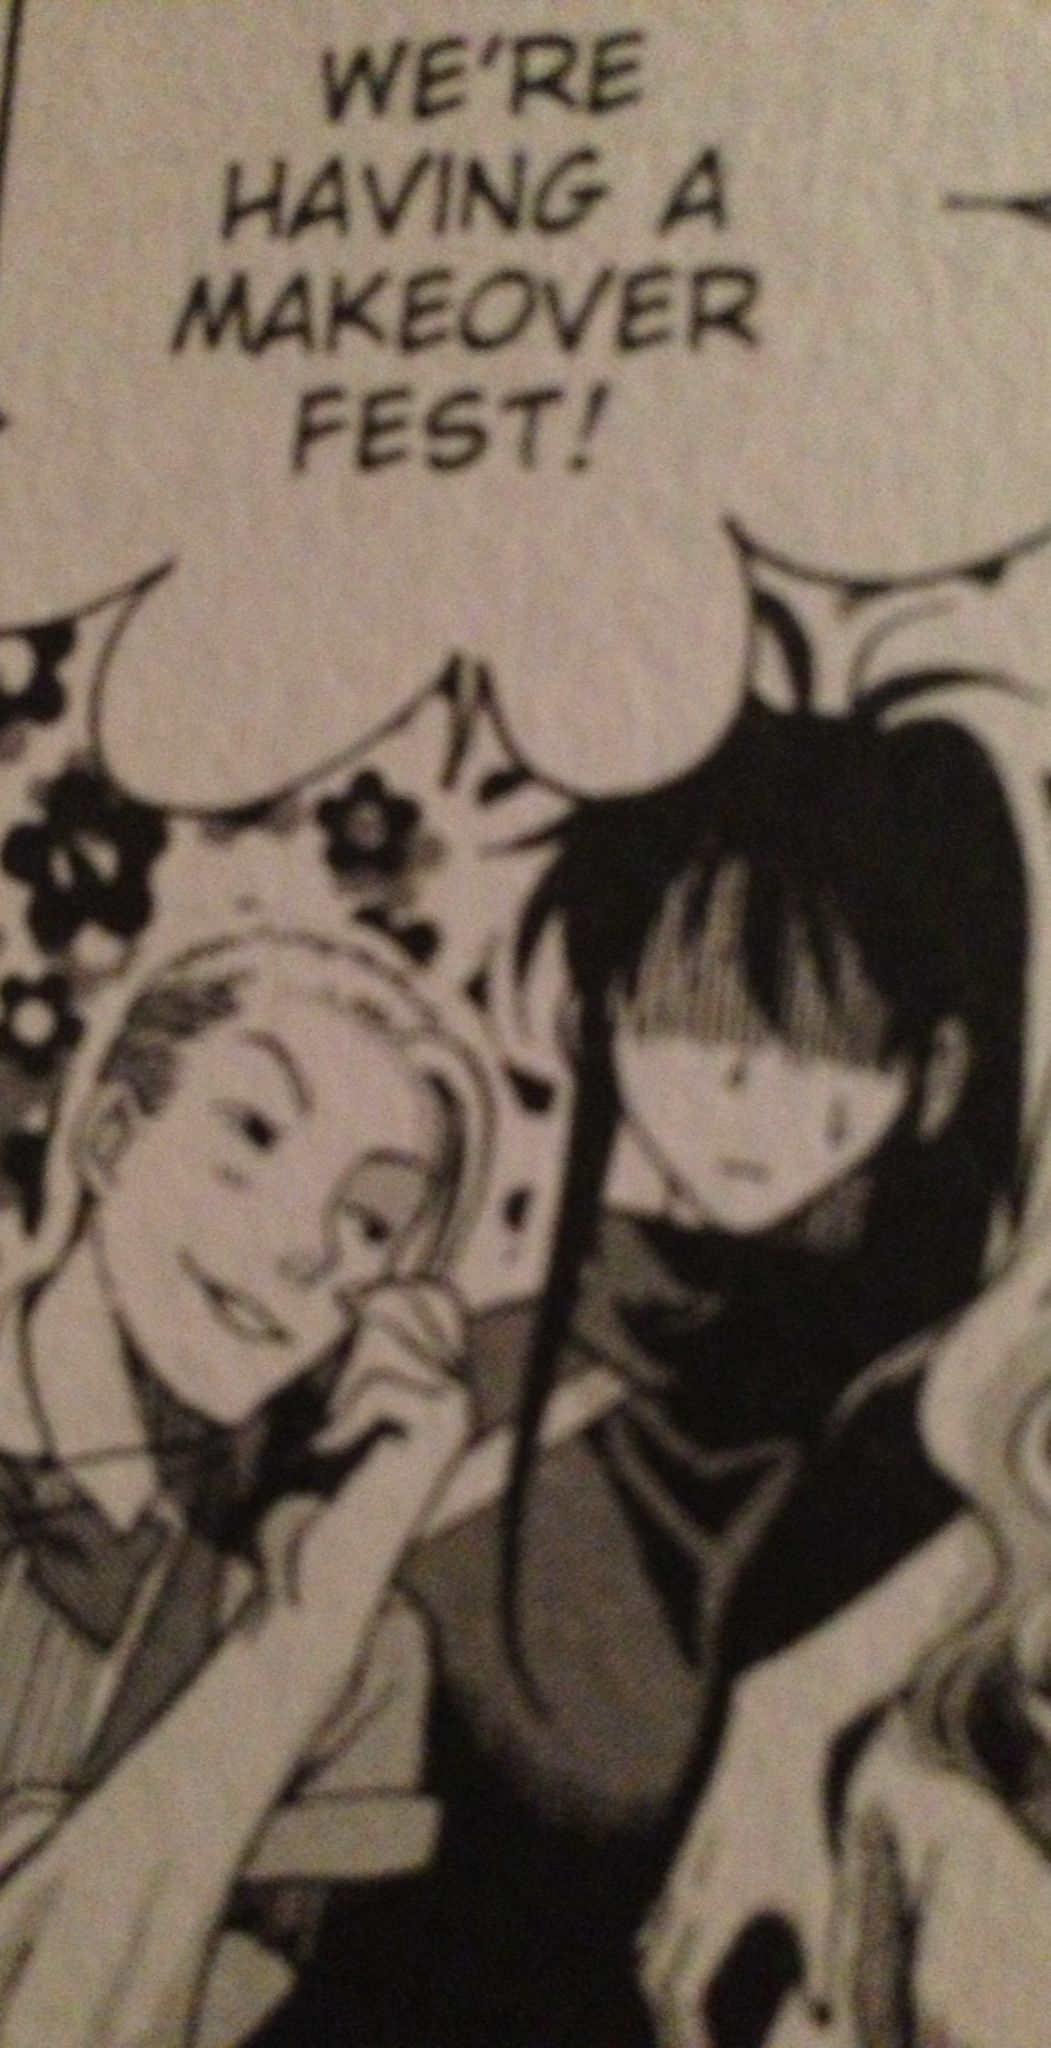 Fangs face here speaks volumes in terms of